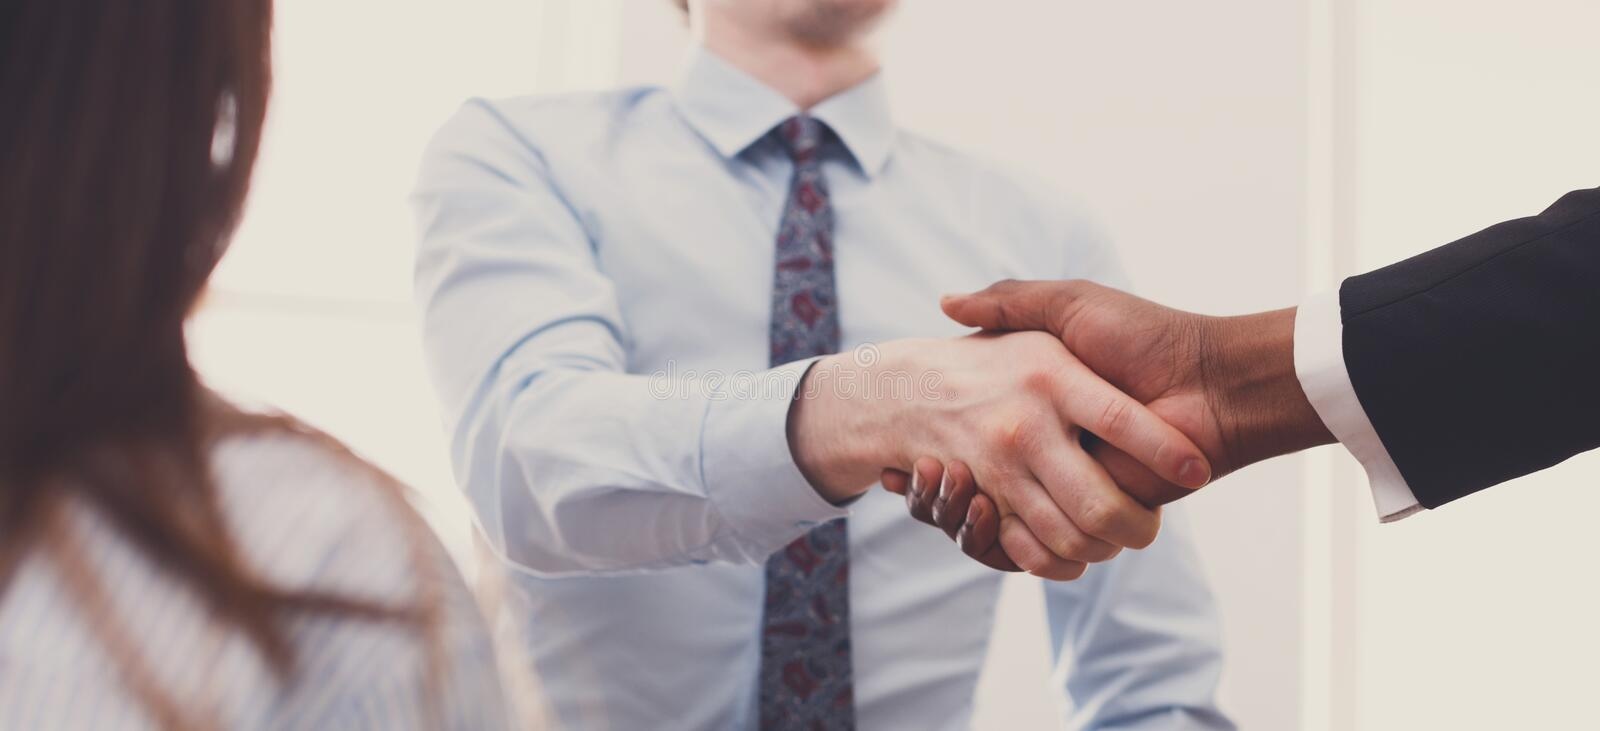 Business multiethnic handshake closeup at office meeting, contract conclusion royalty free stock photo